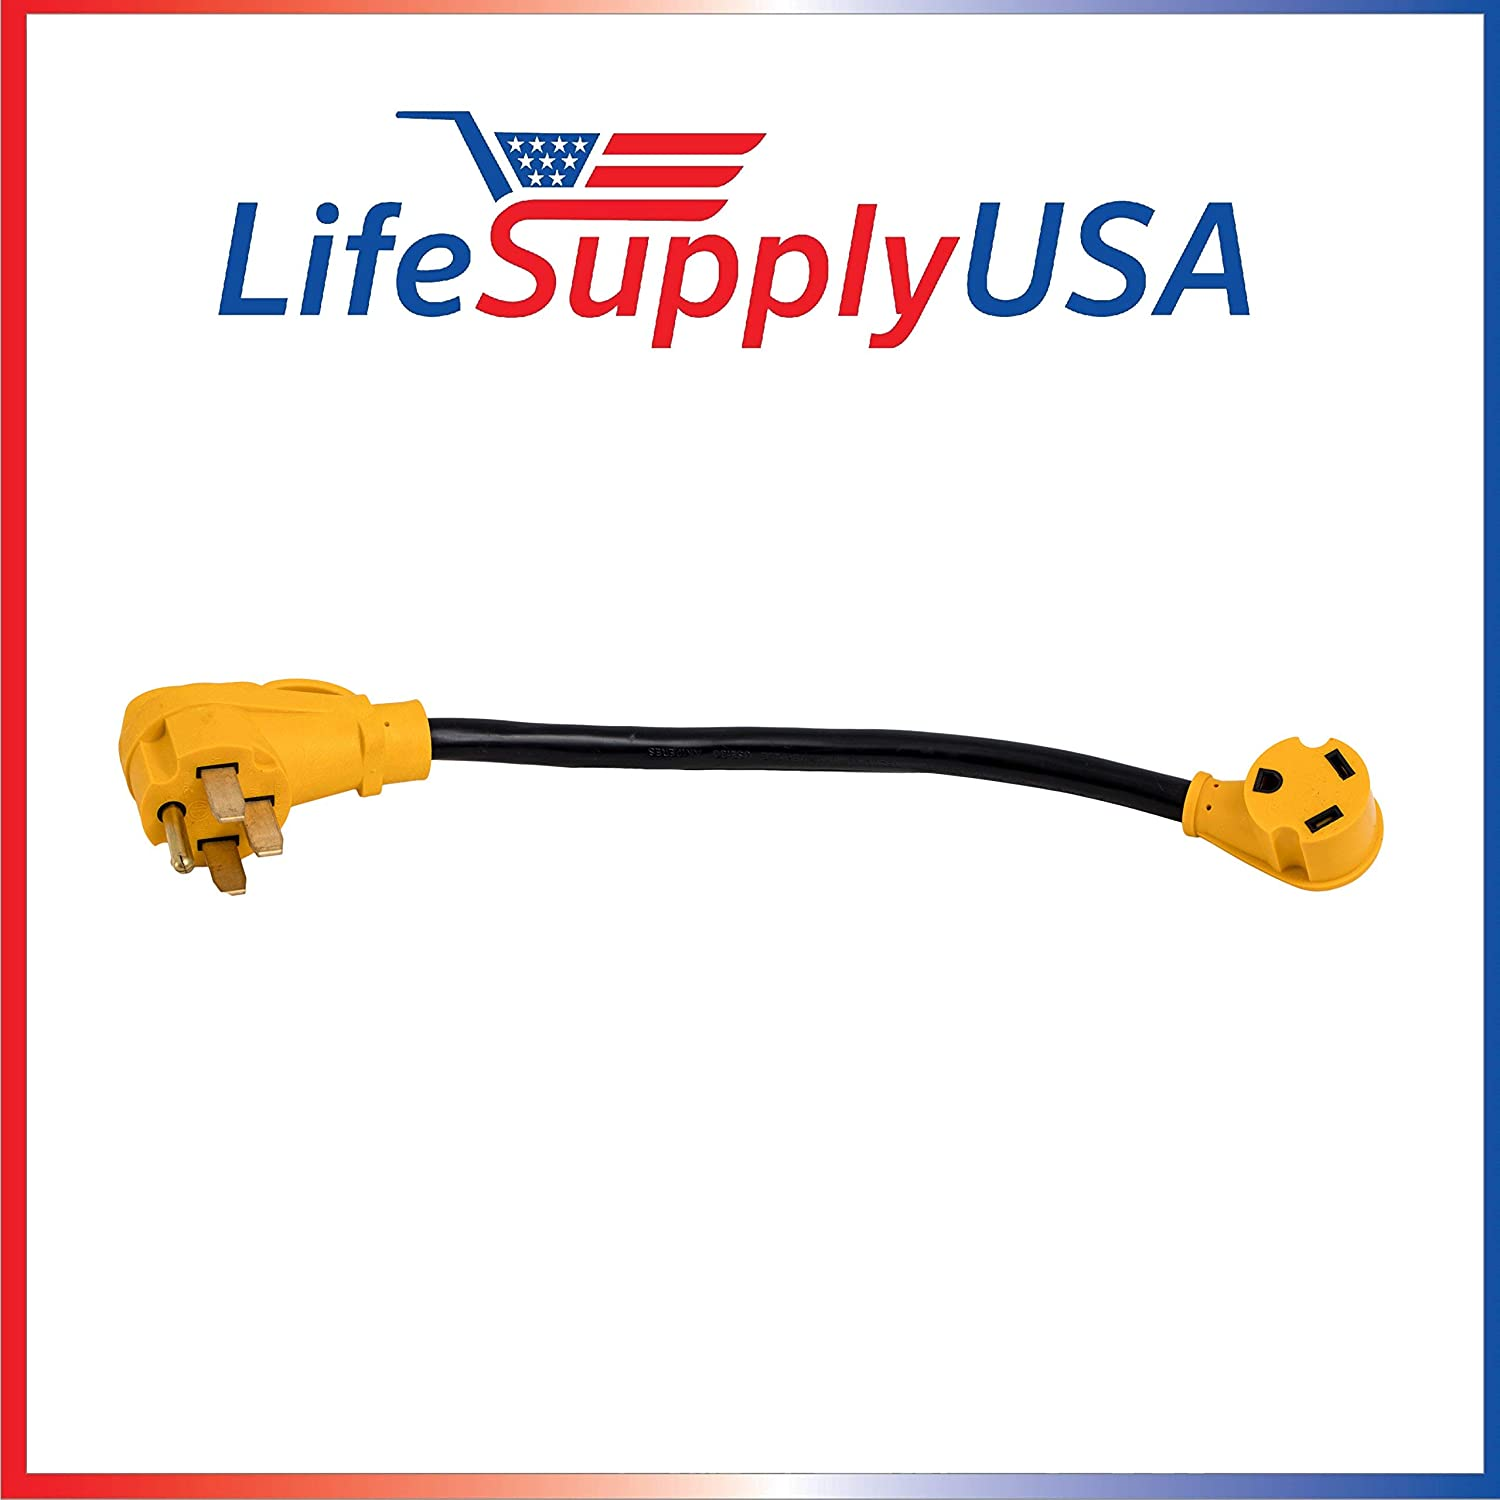 LifeSupplyUSA 50 Pack - STW 10AWG 18 Inch 50M/30F Heavy Duty Electrical Adapter for RV with Handle, Male: 50 AMP NEMA 14-50P to Female: 30 AMP TT30R 18